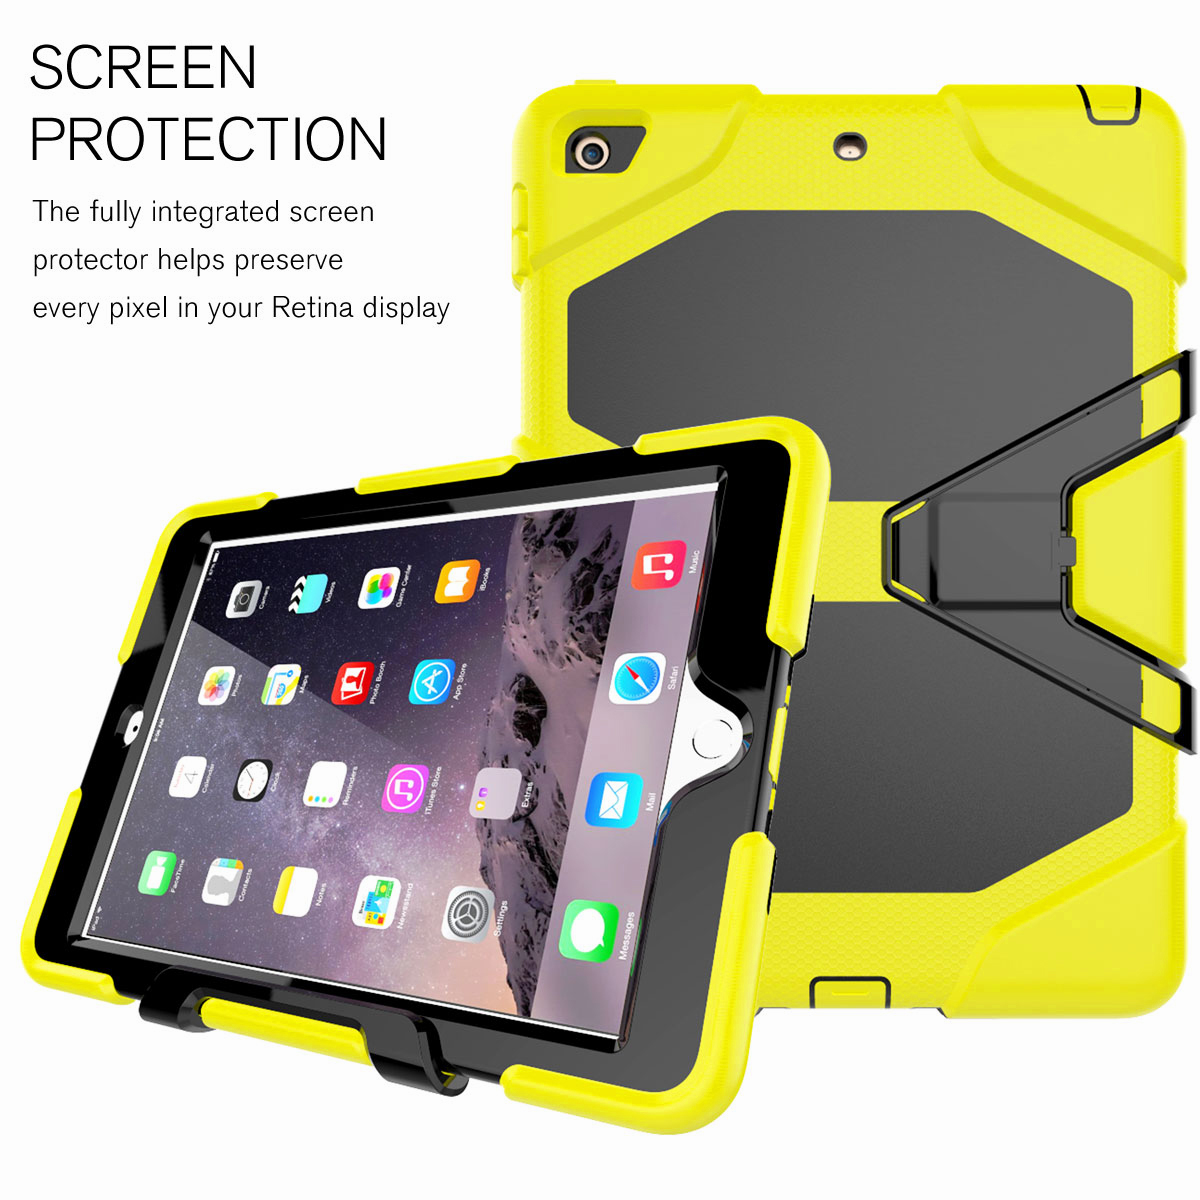 Shockproof-Screen-Protector-Rugged-Case-For-Apple-iPad-9-7-Air-Pro-Mini-1-2-3-4